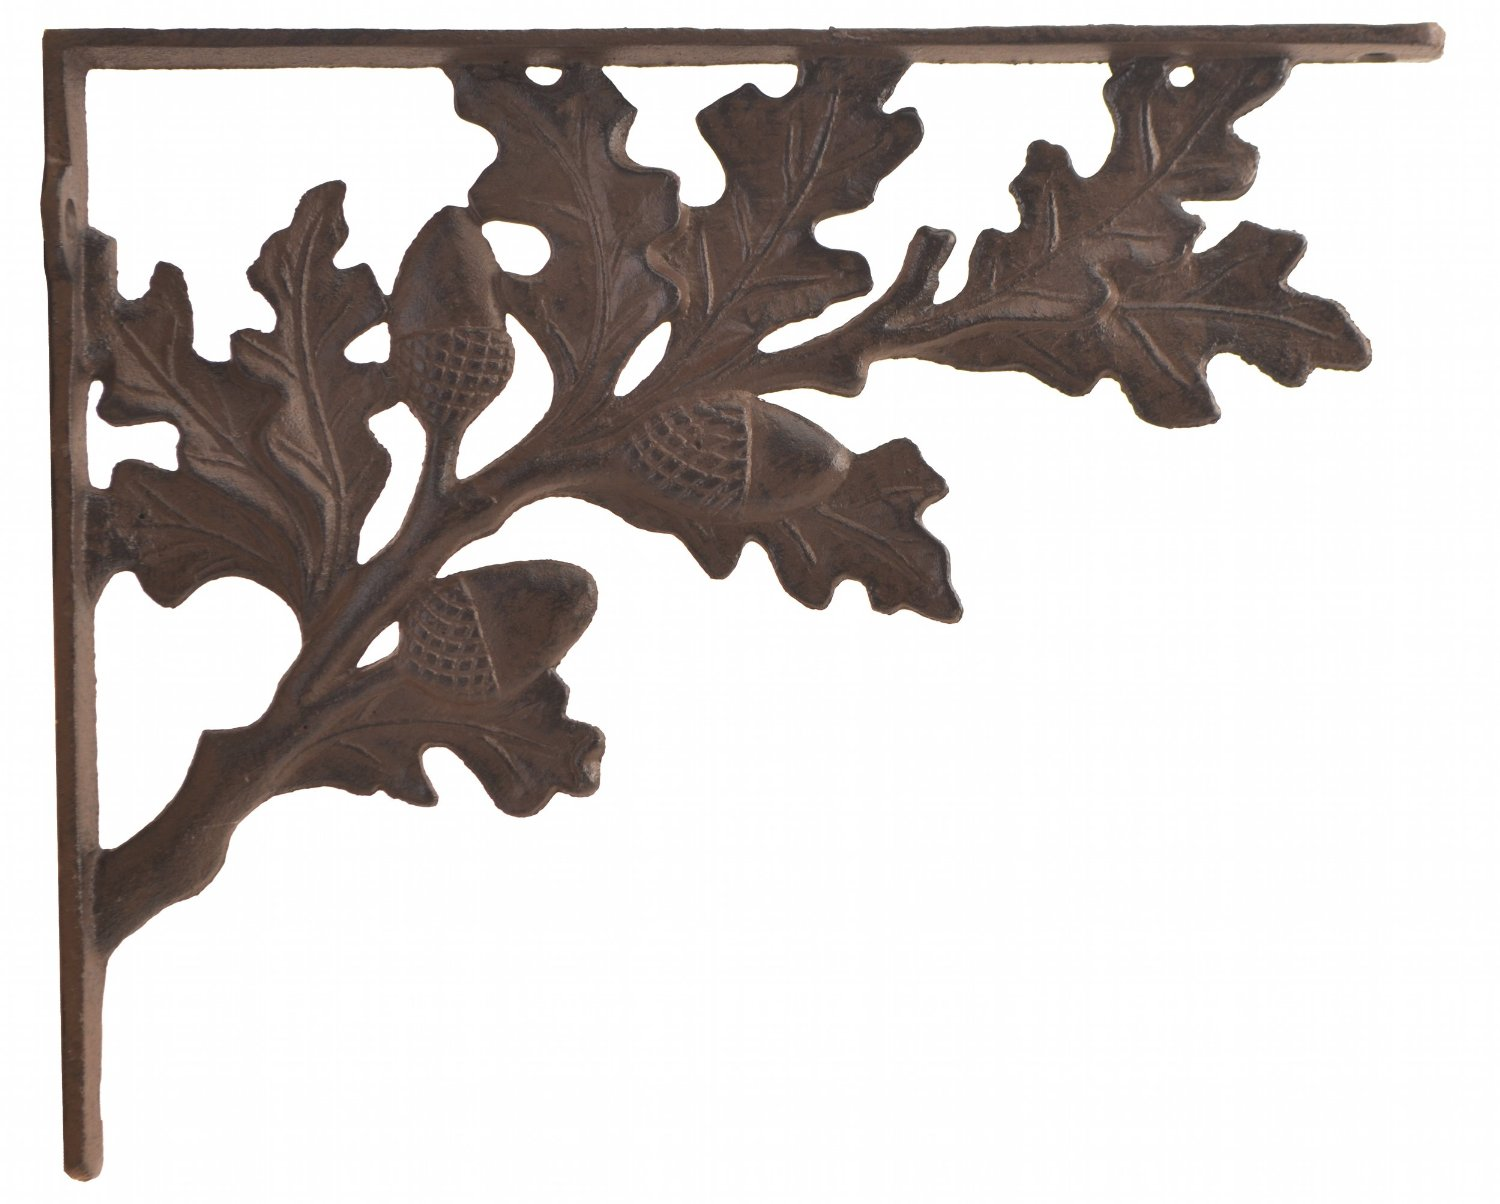 Wall Shelf Bracket - Oak Leaf & Acorn Pattern - Cast Iron - 11.25""